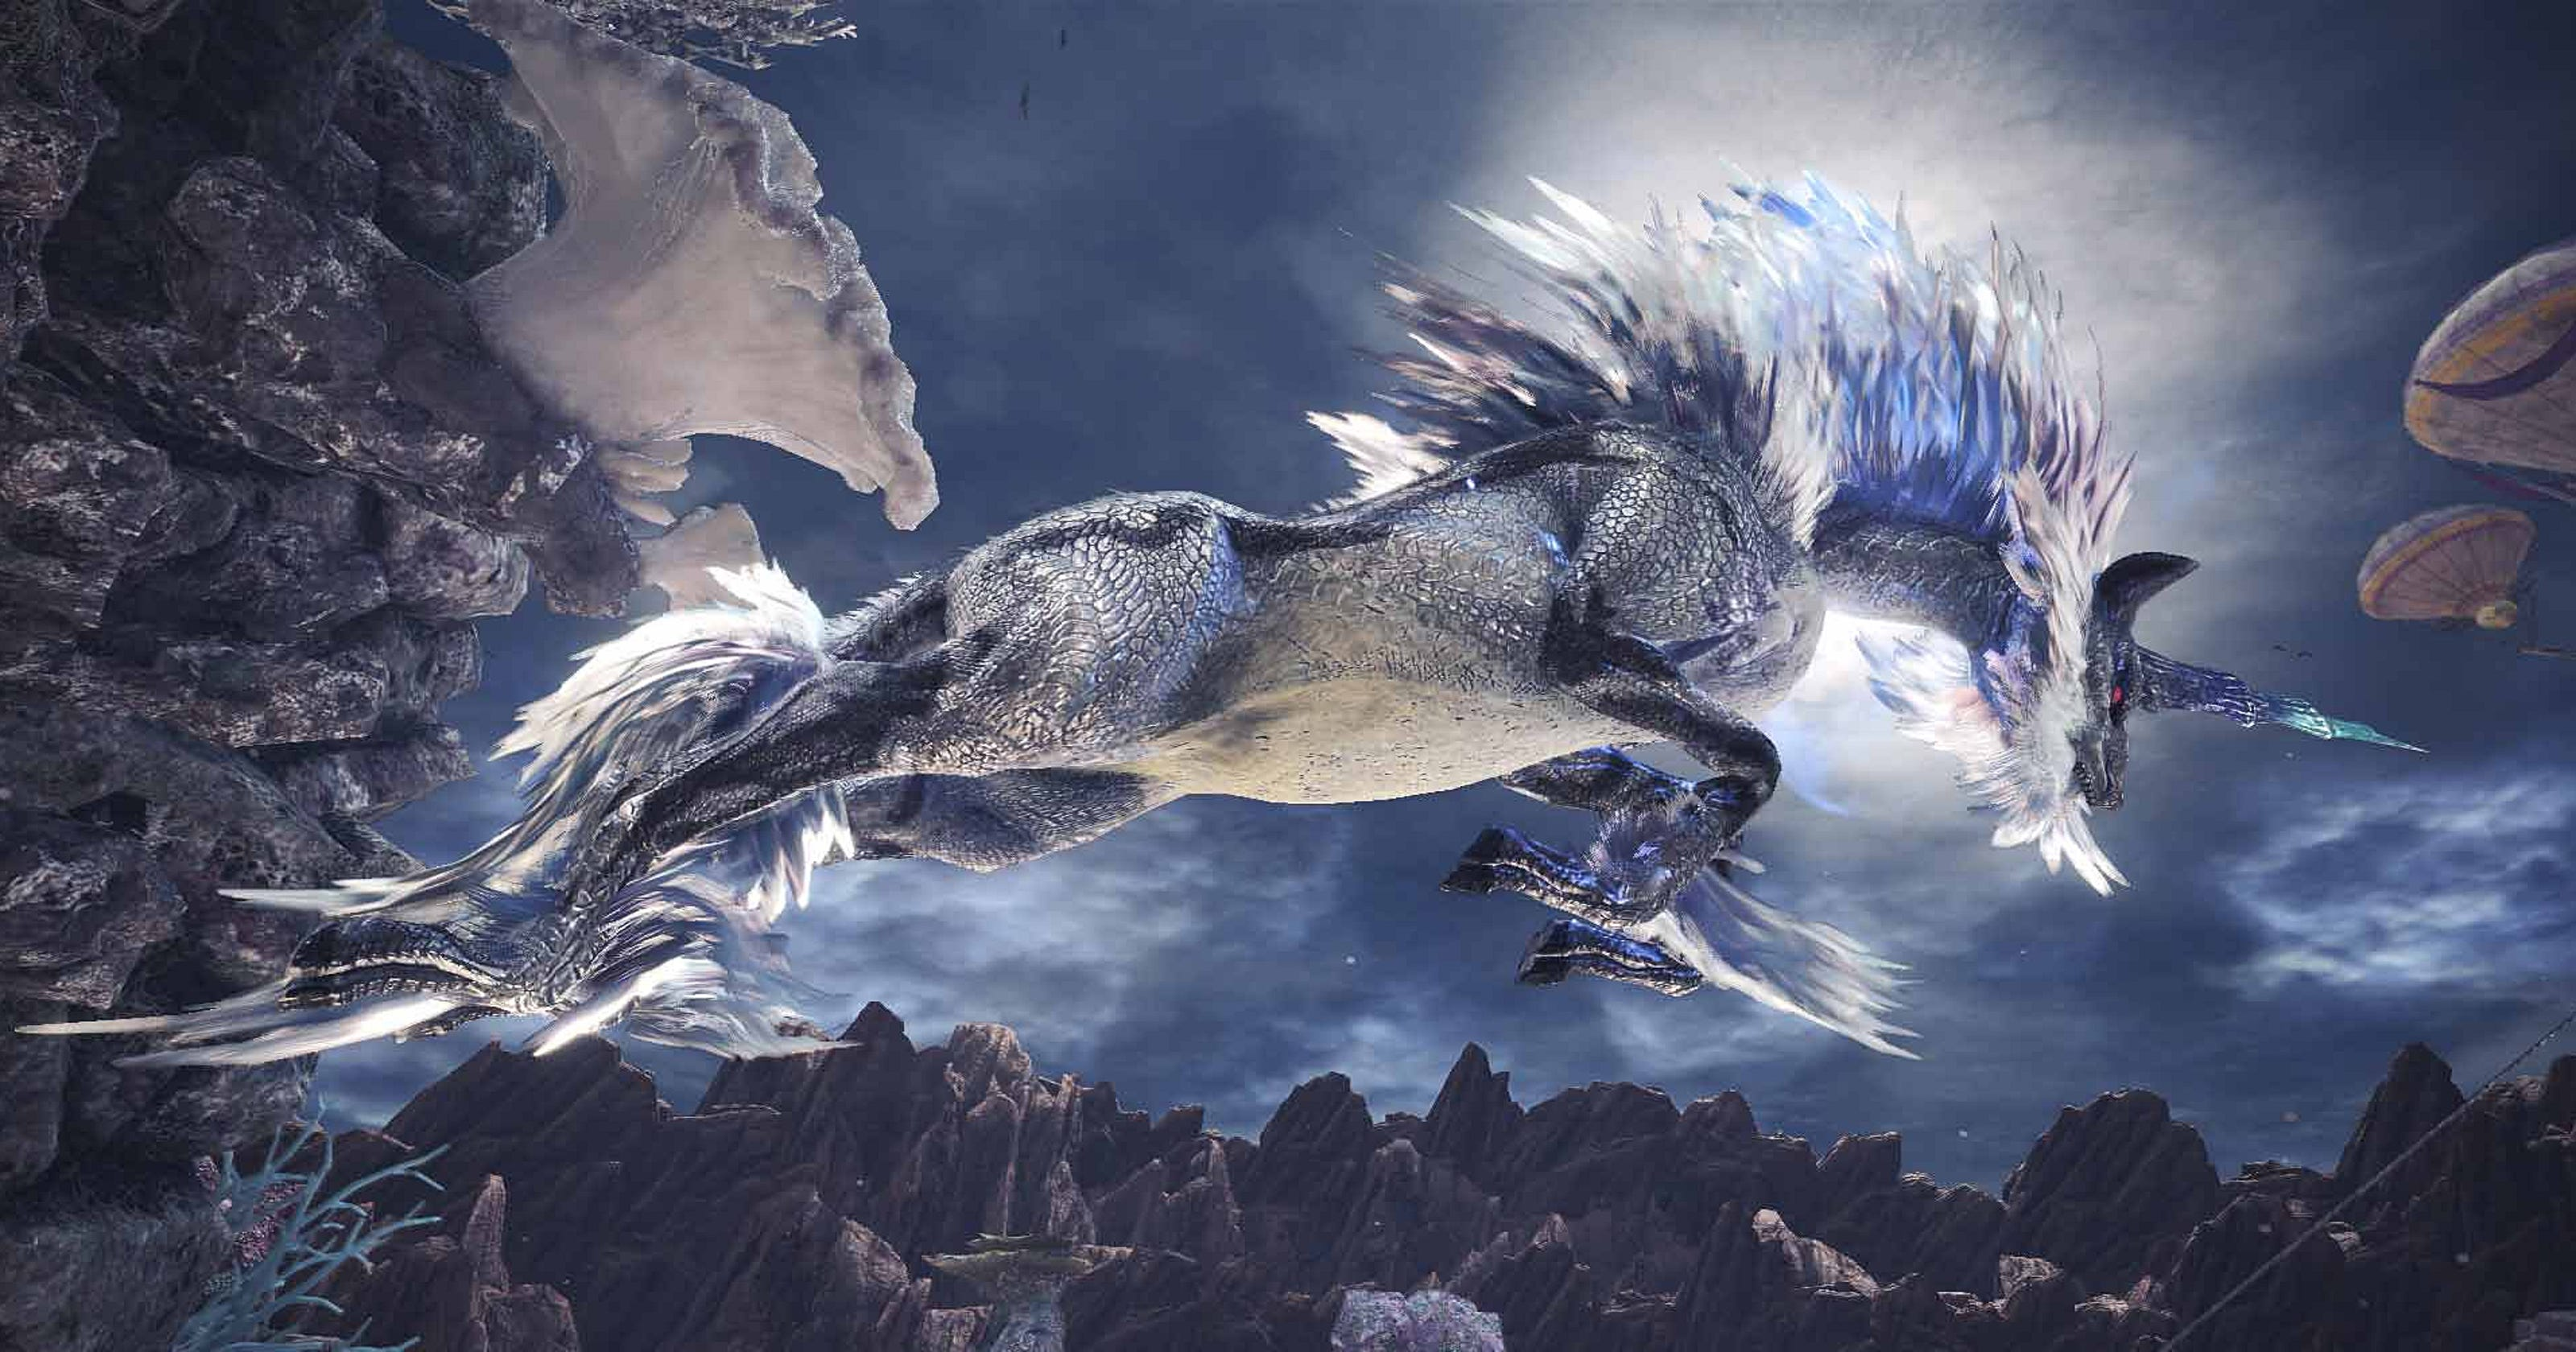 How to beat Arch-Tempered Kirin in Monster Hunter World | Technobubble